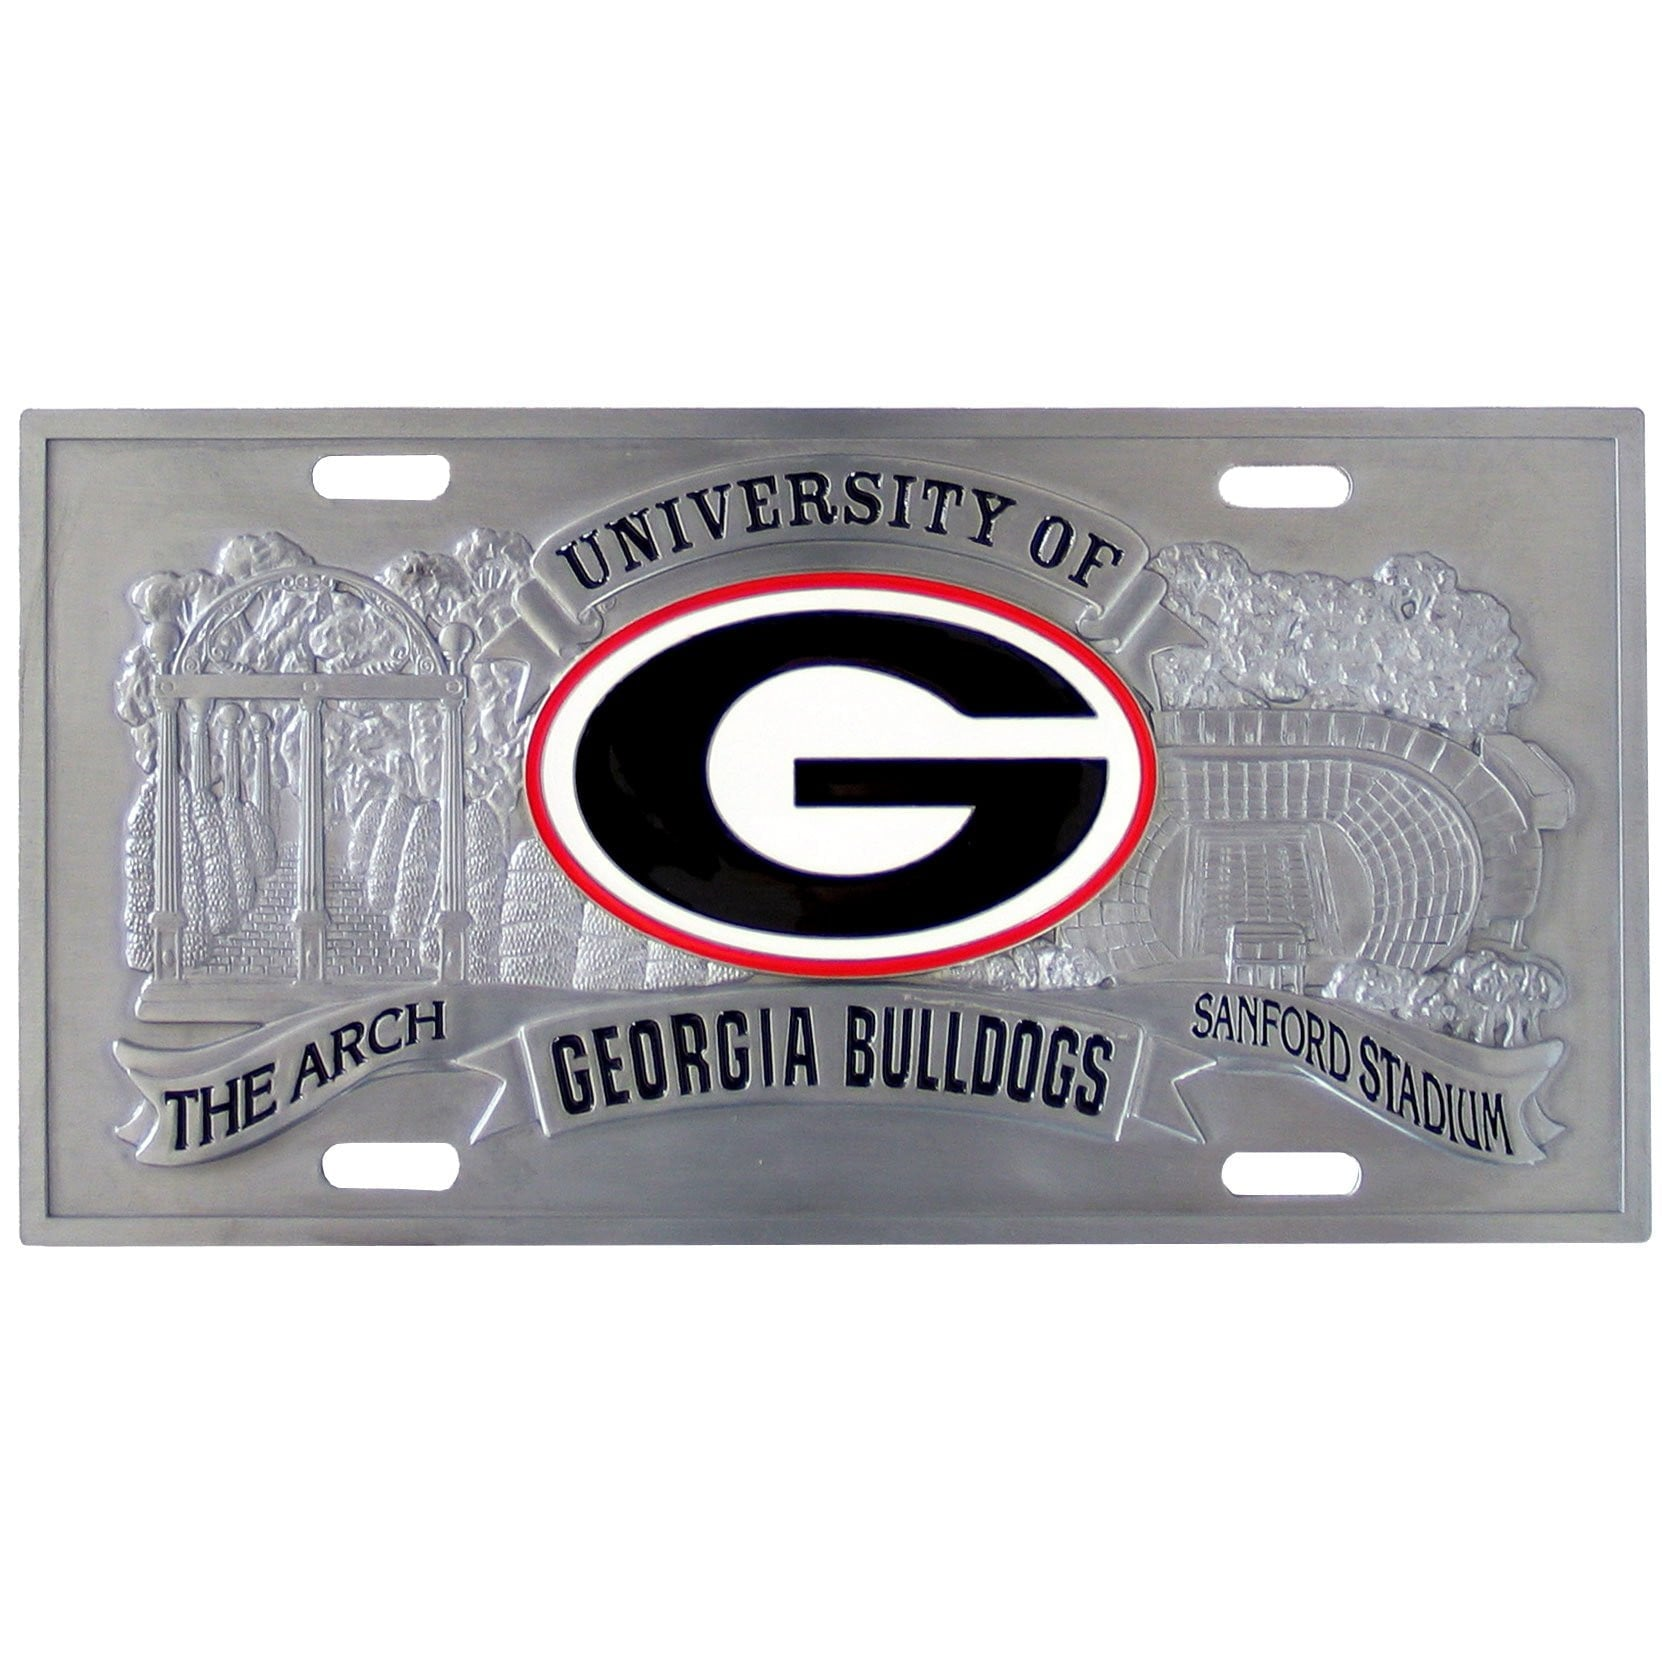 Georgia Bulldogs Collector's License Plate